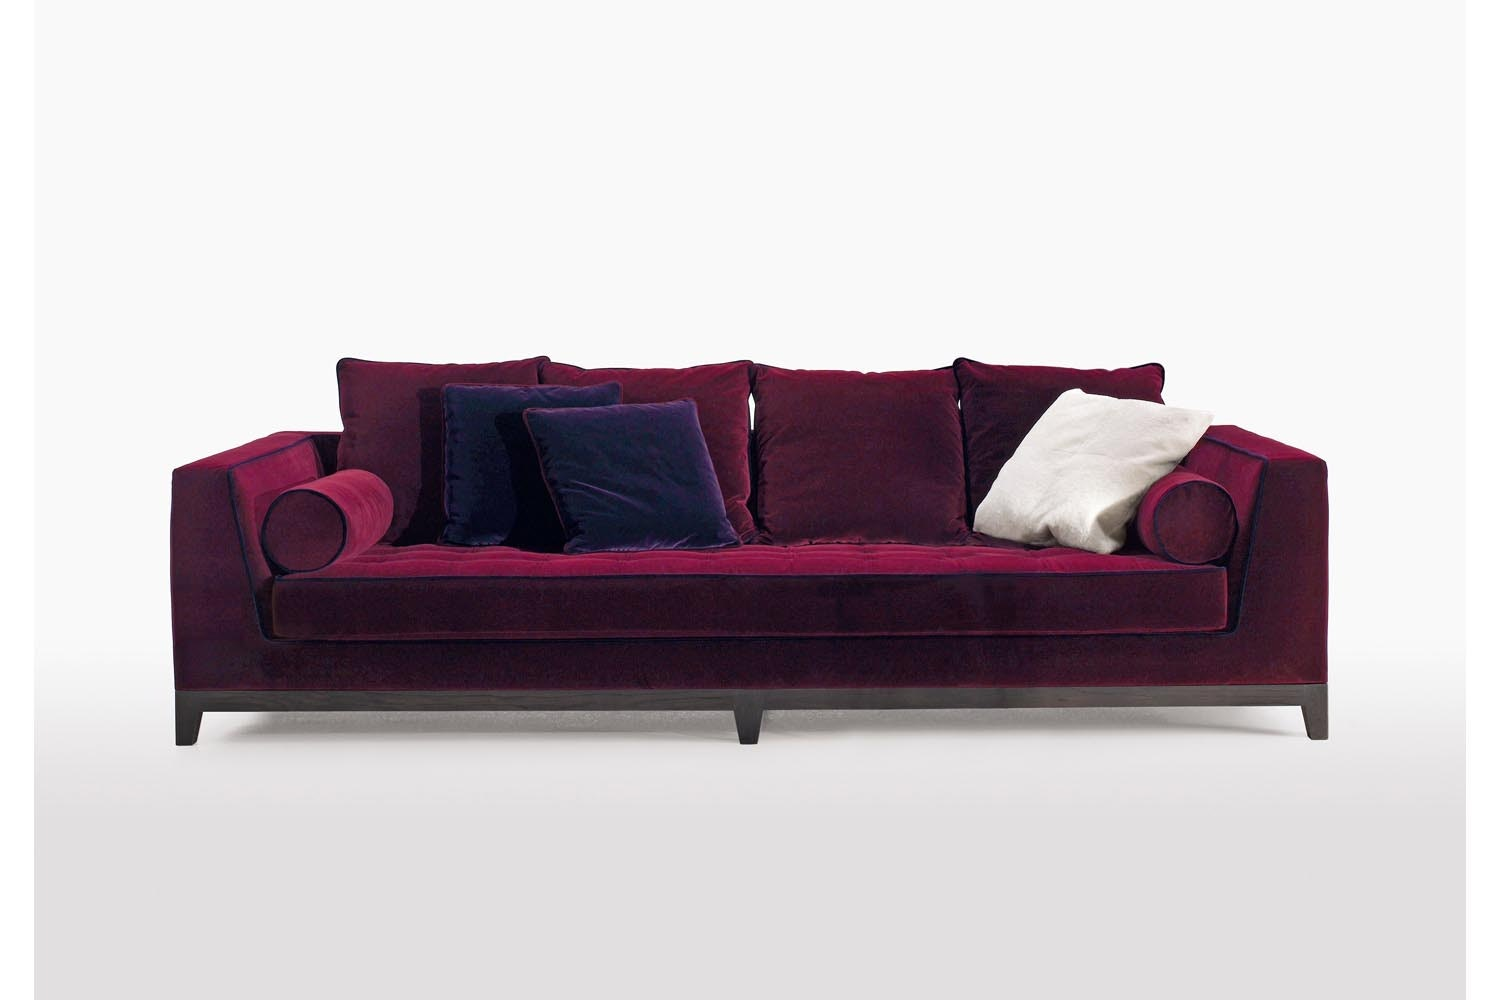 Lutetia 2011 Sofa by Antonio Citterio for Maxalto